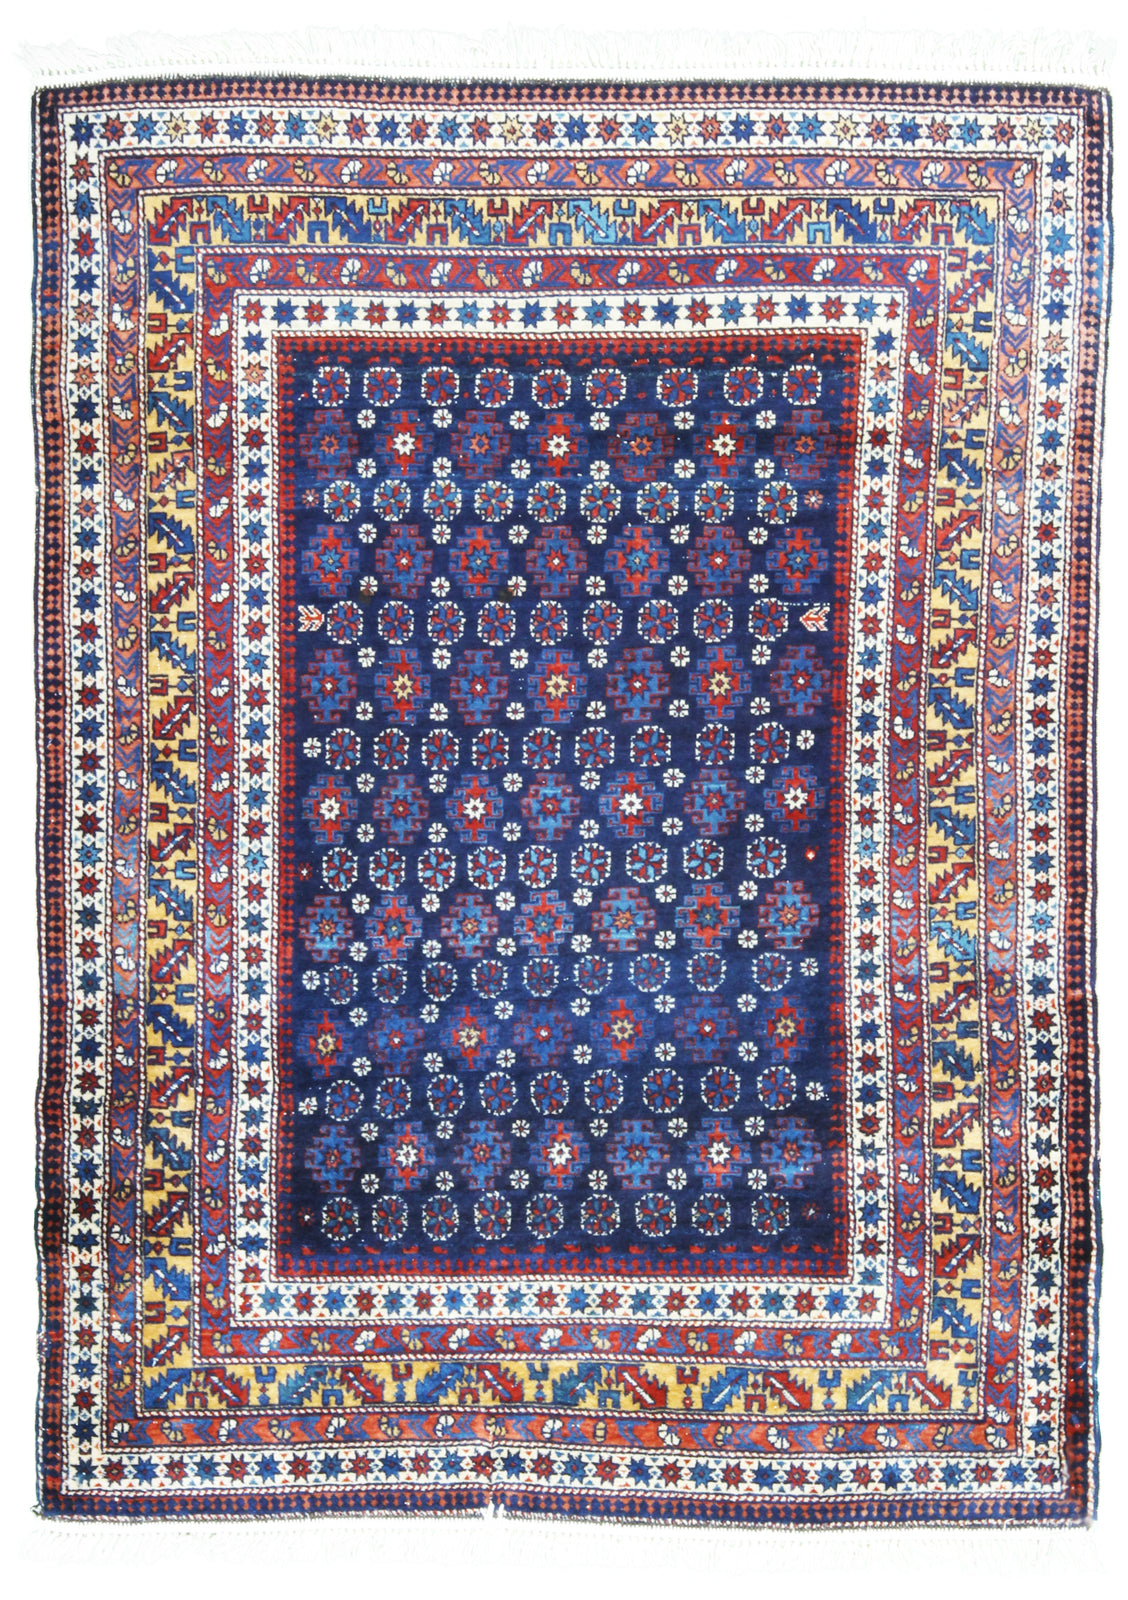 Shirvan Antique-Turco Persian Rug Company Inc.